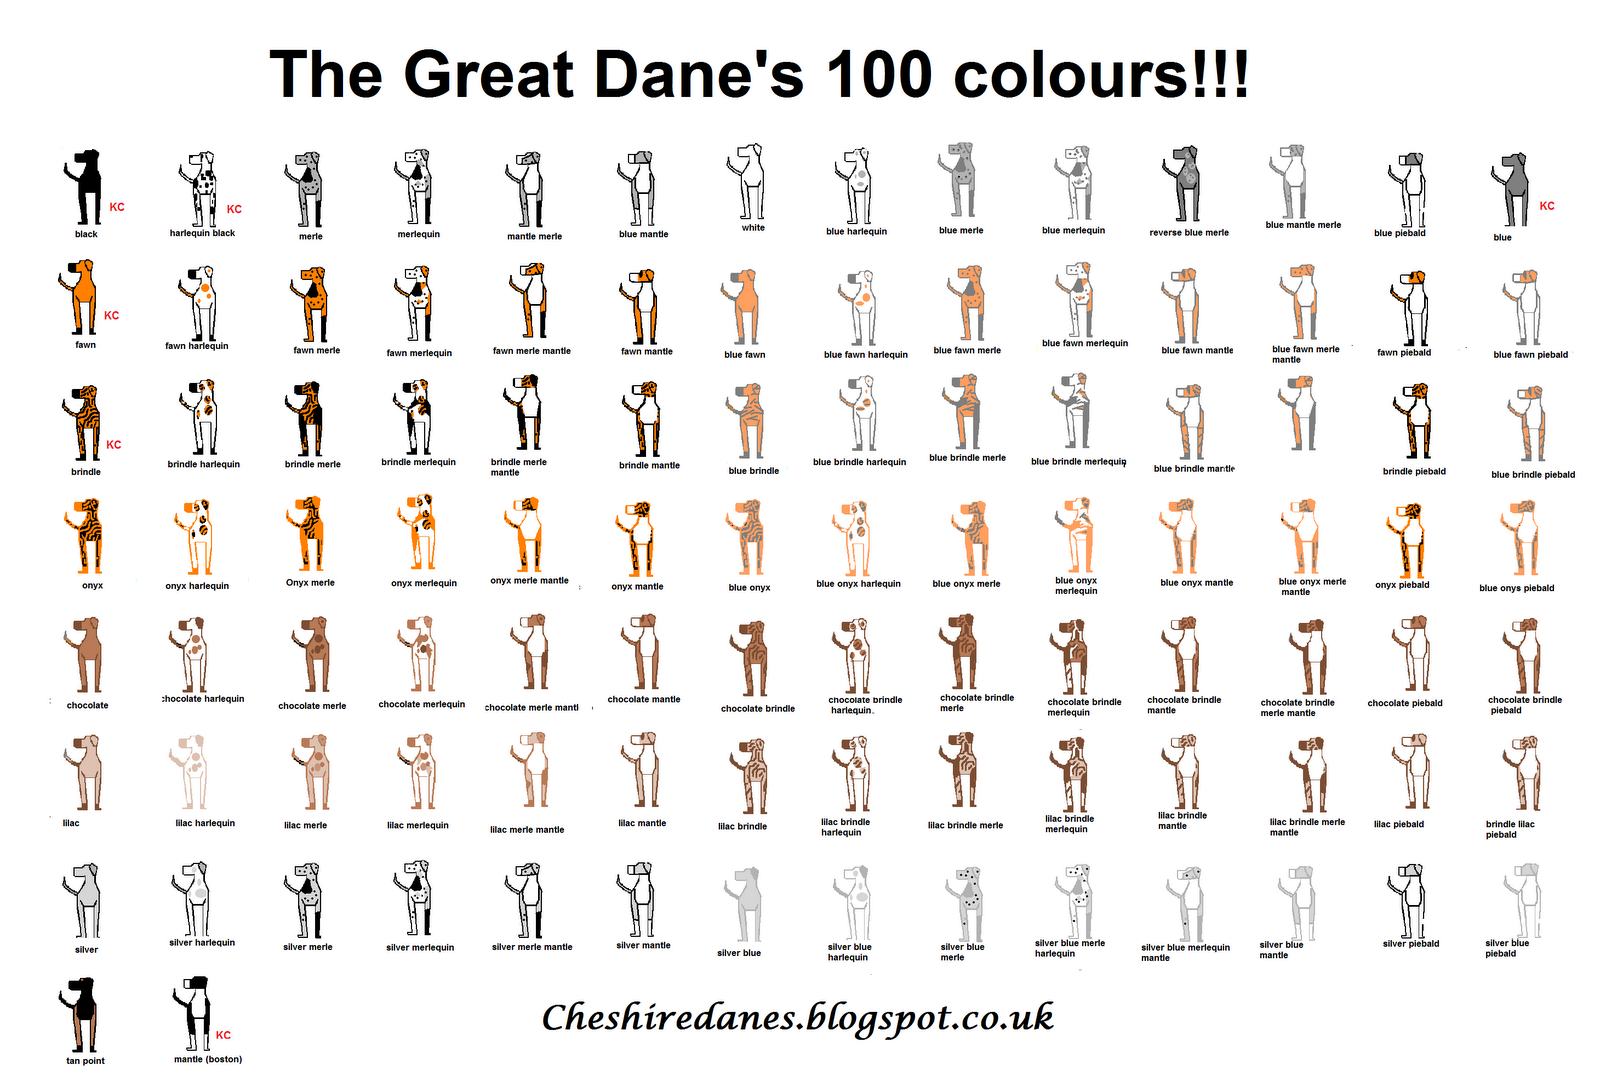 Great danesssss projects to try pinterest cuddling and dog explore great dane colors color charts and more nvjuhfo Choice Image